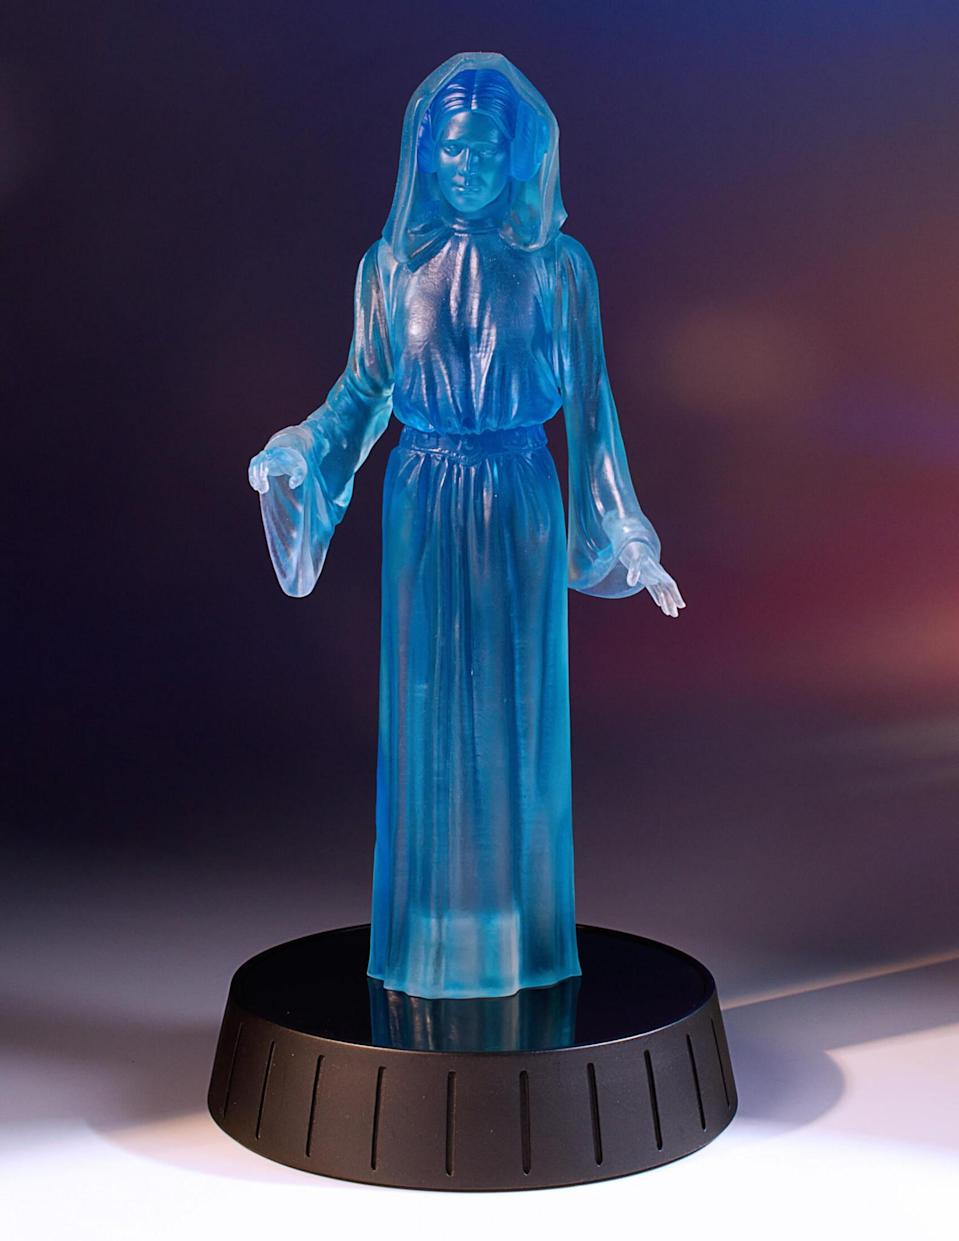 """<p>This statue lights up and plays the classic """"Help me, Obi-Wan Kenobi"""" line from <a rel=""""nofollow"""" href=""""https://www.yahoo.com/movies/film/star-wars-a-new-hope"""" data-ylk=""""slk:A New Hope"""" class=""""link rapid-noclick-resp""""><em>A New Hope</em></a>. (Photo: Gentle Giant Ltd.) </p>"""